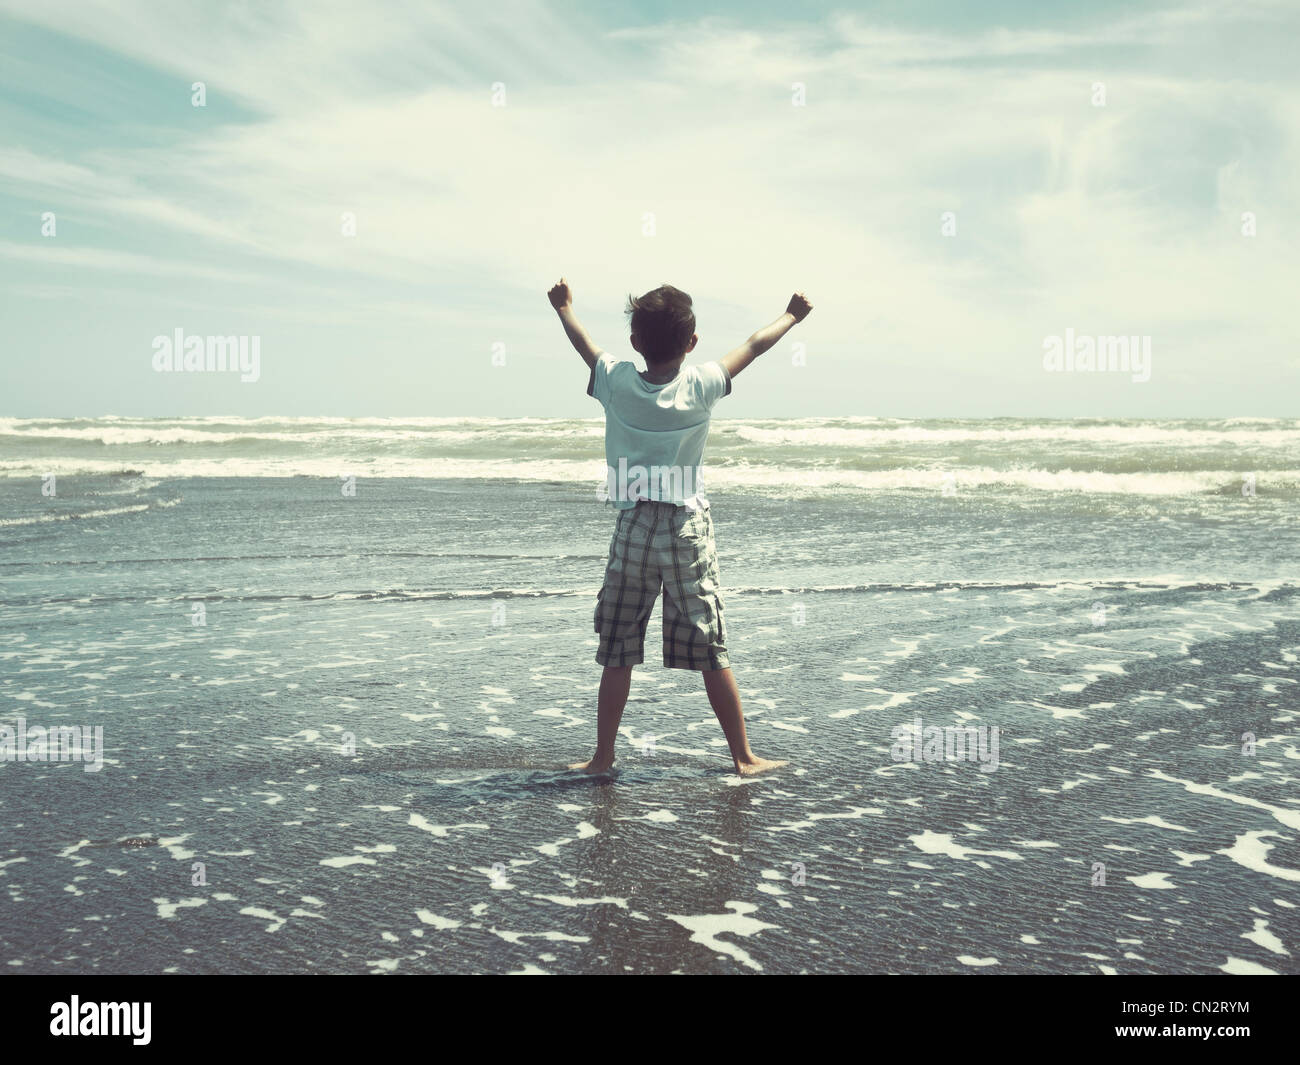 Je retiens la mer : boy on beach, en Nouvelle-Zélande. Photo Stock